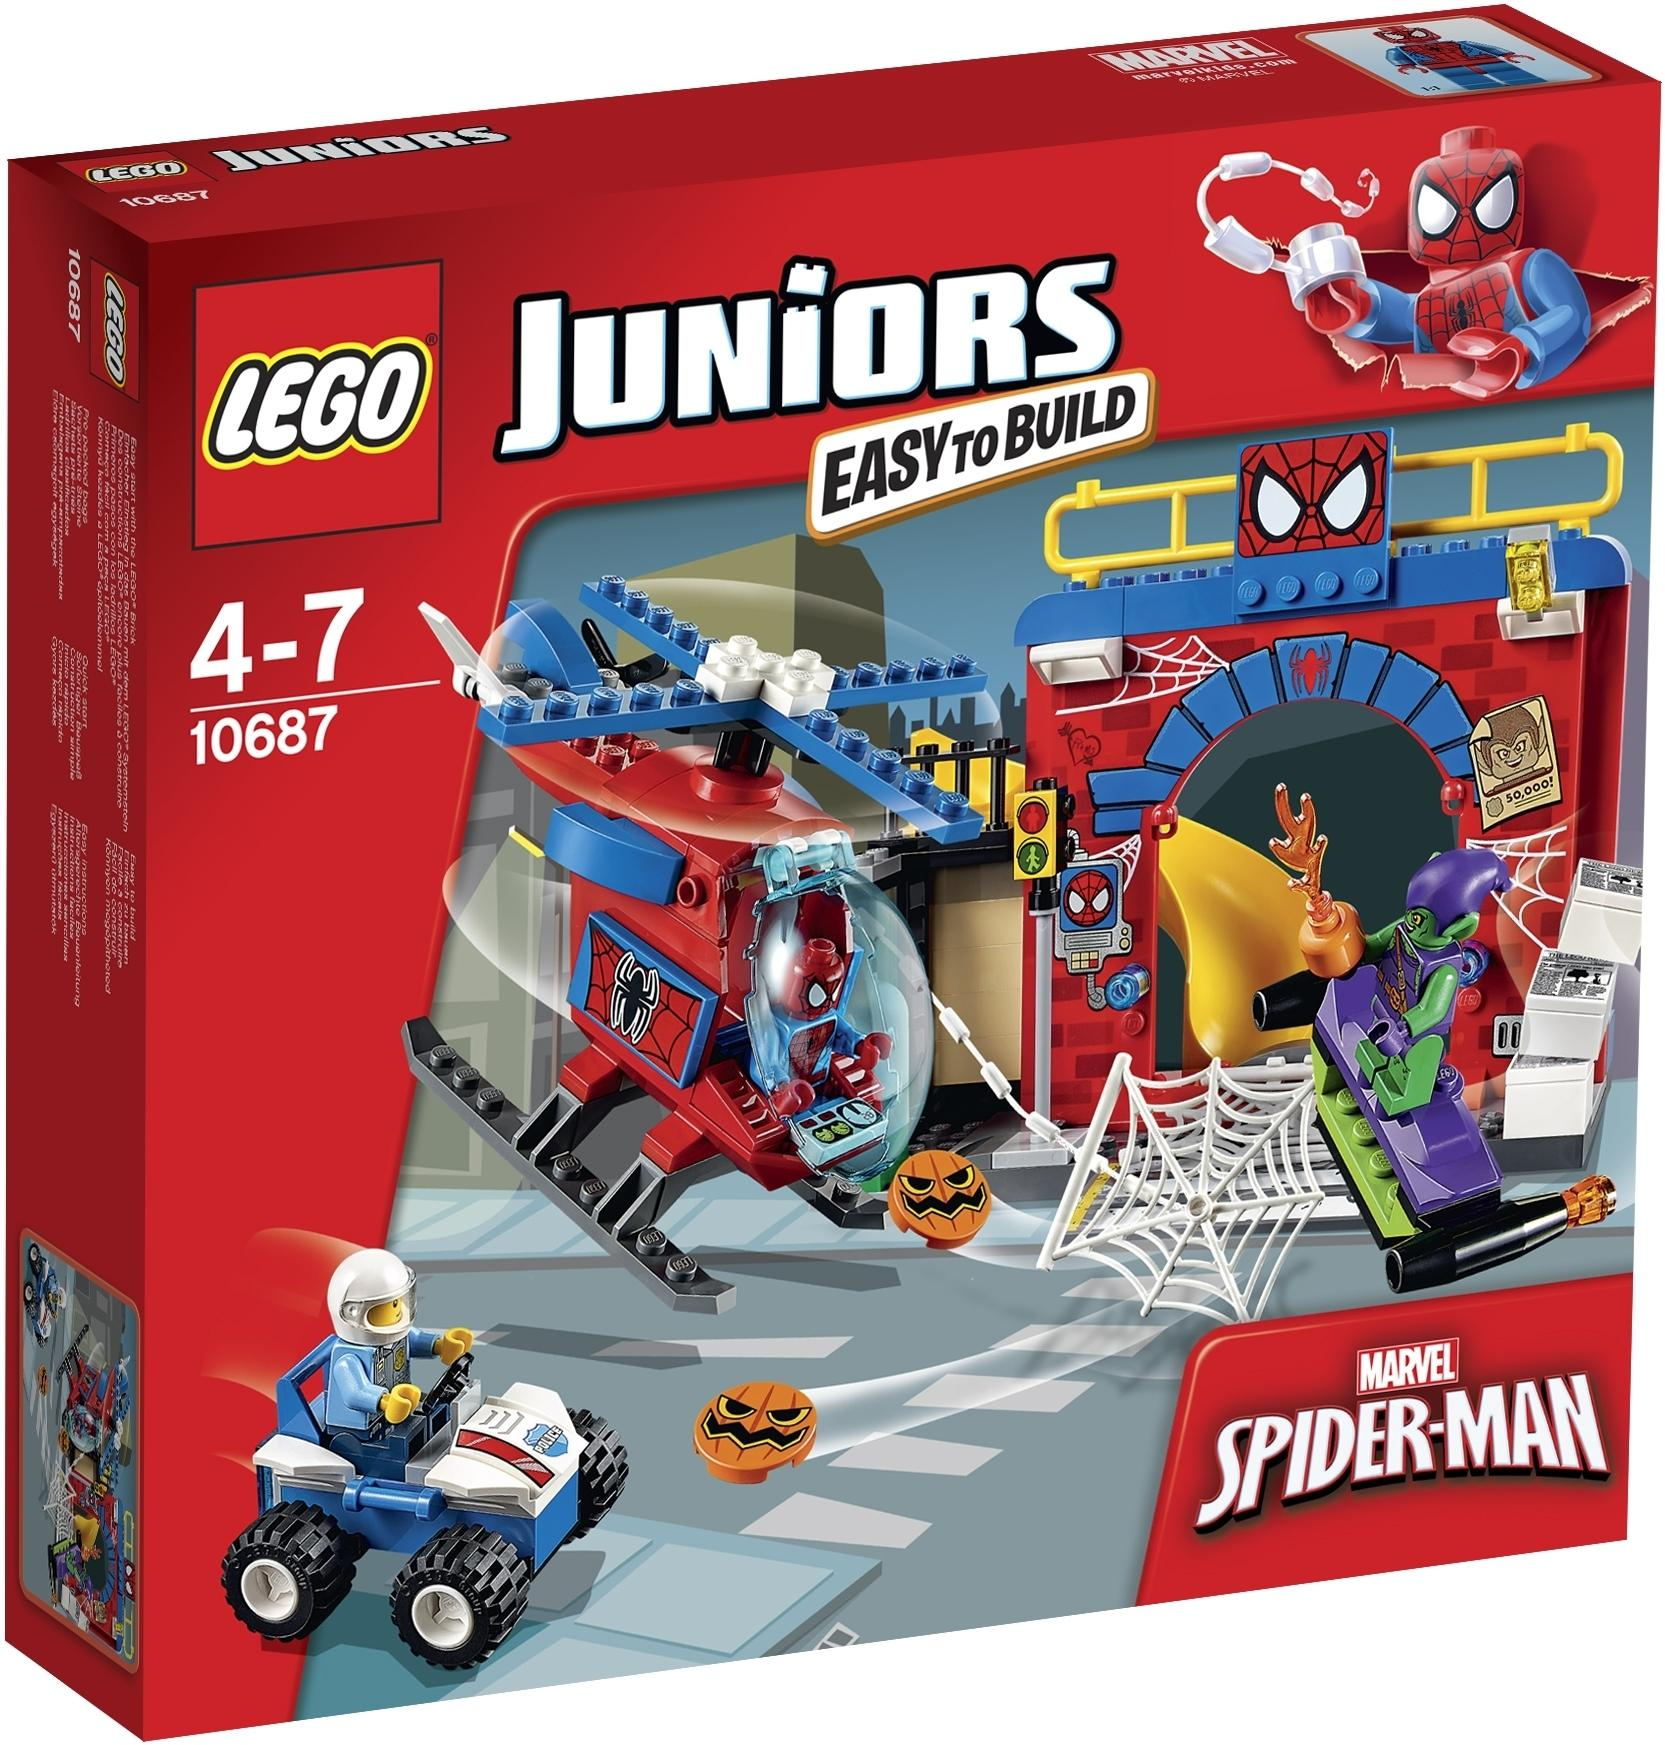 Lego Juniors Spiderman's hideout